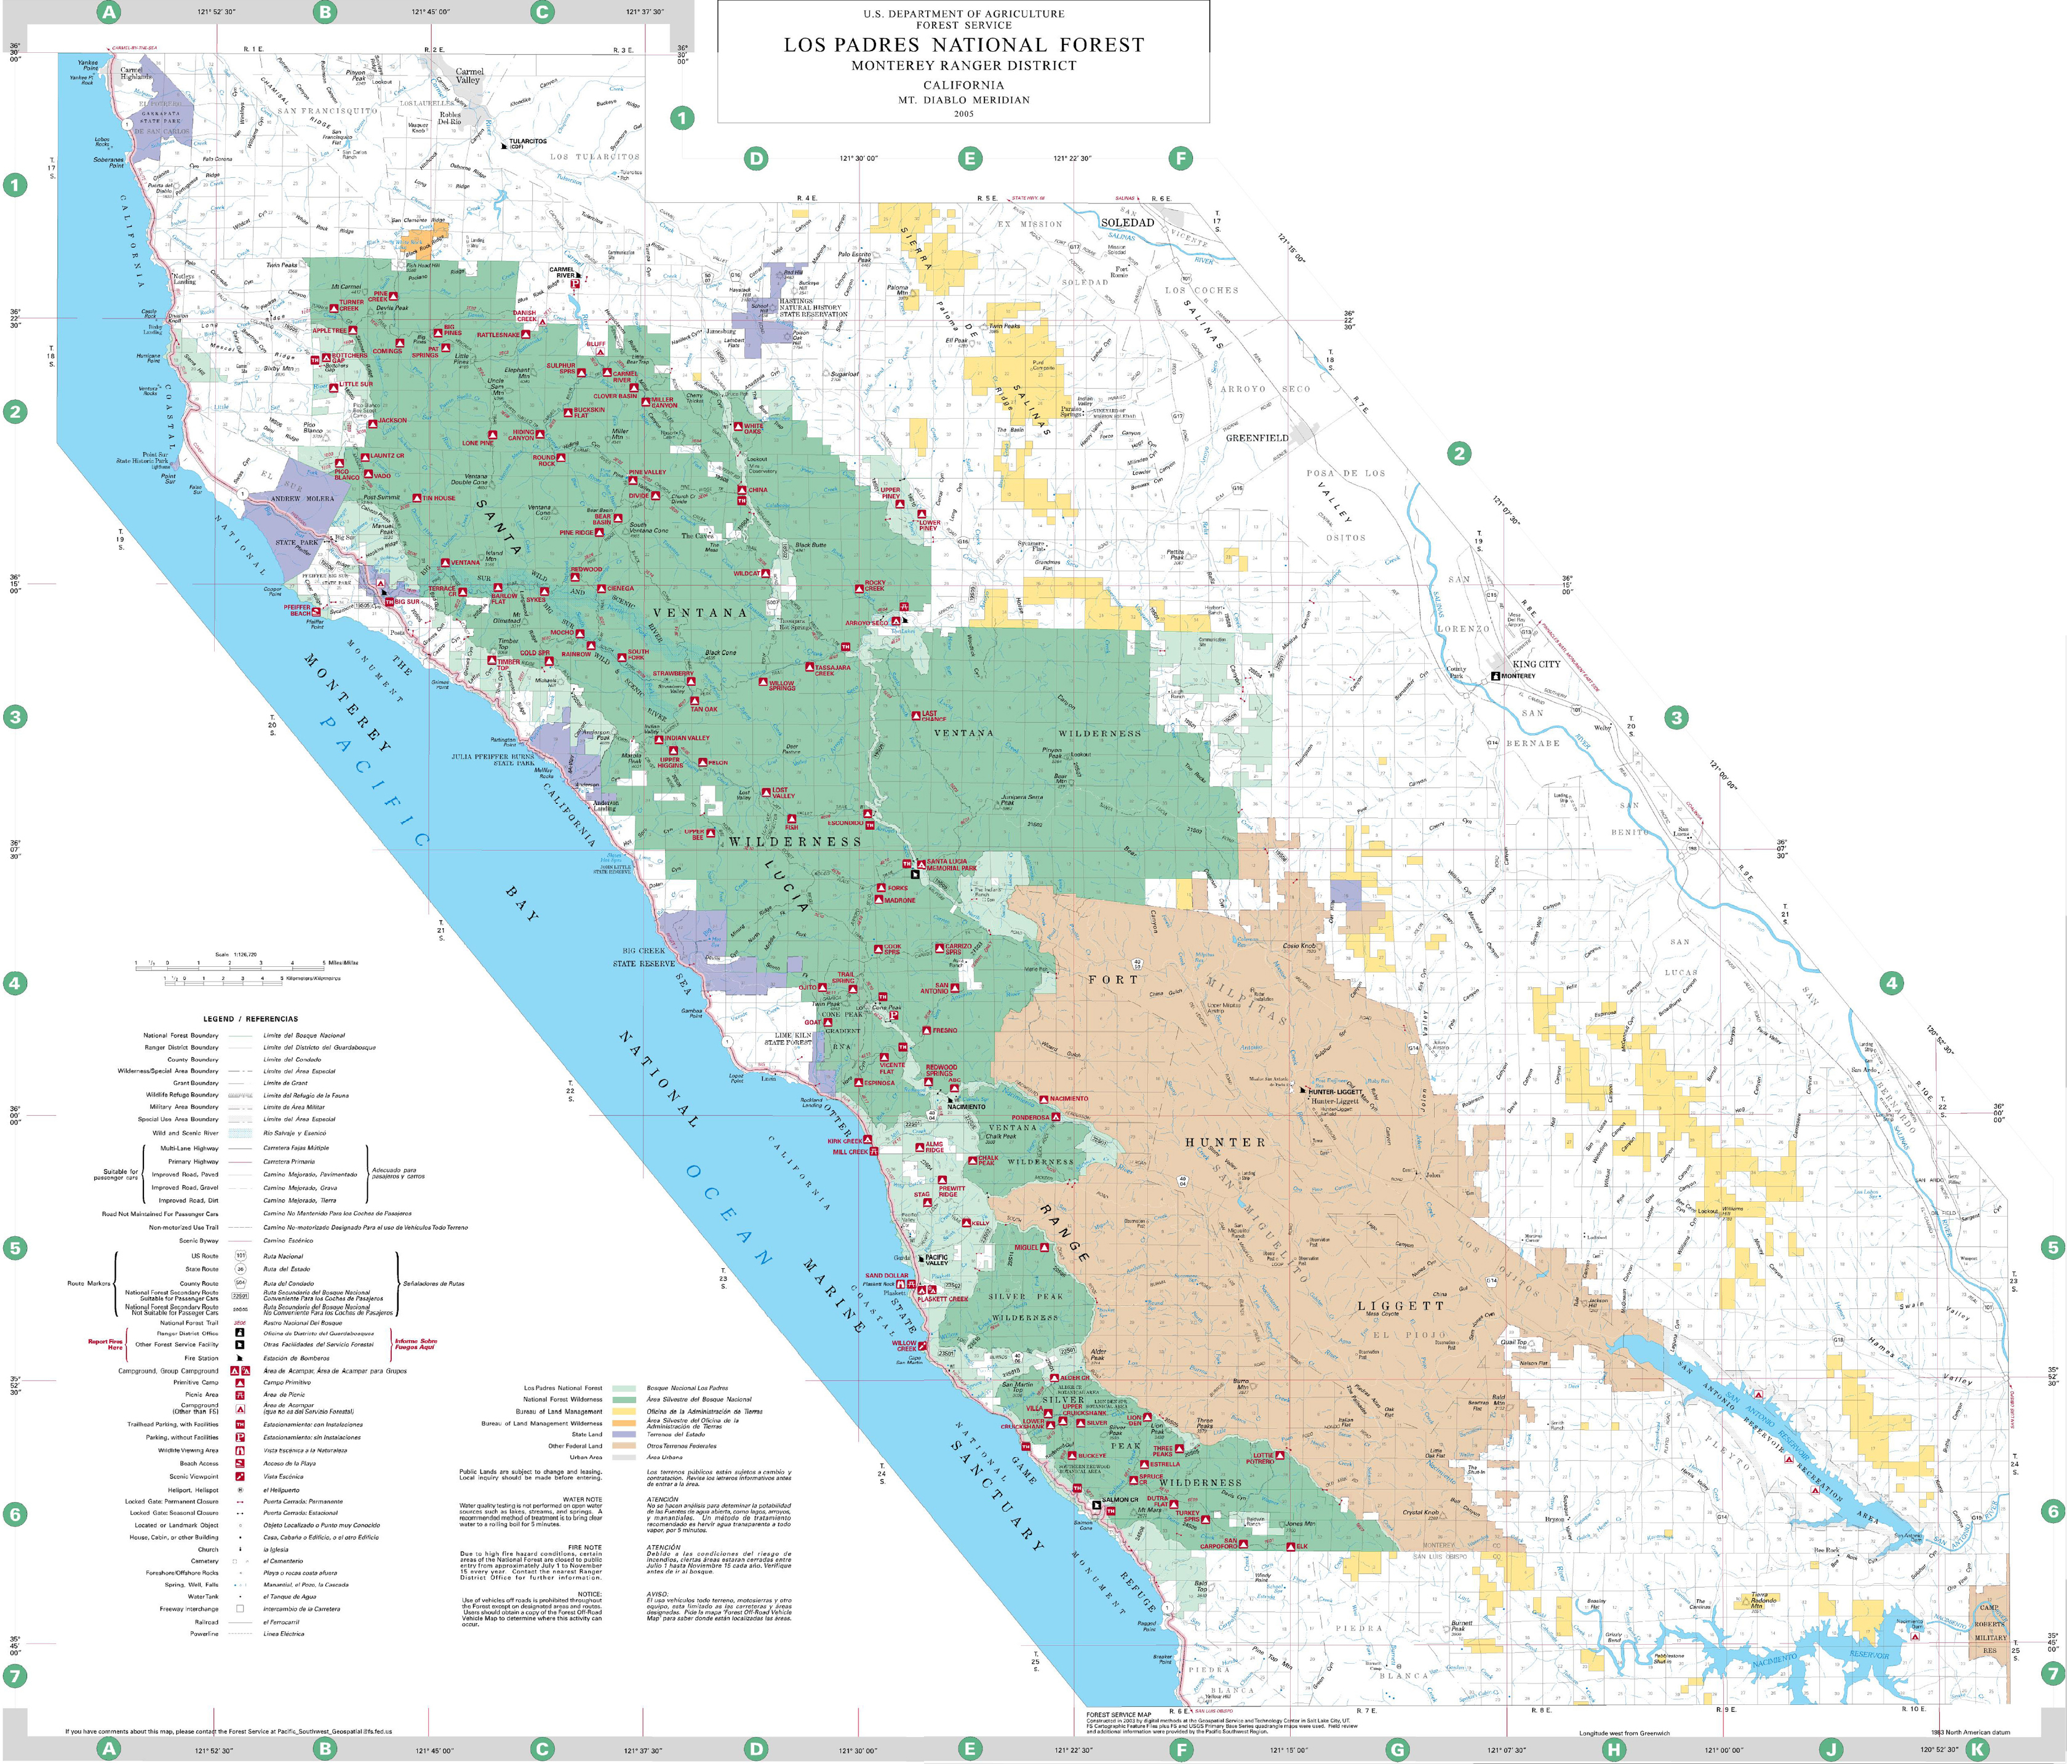 Los Padres National Forest Map Map California National Forests In - California National Forest Map